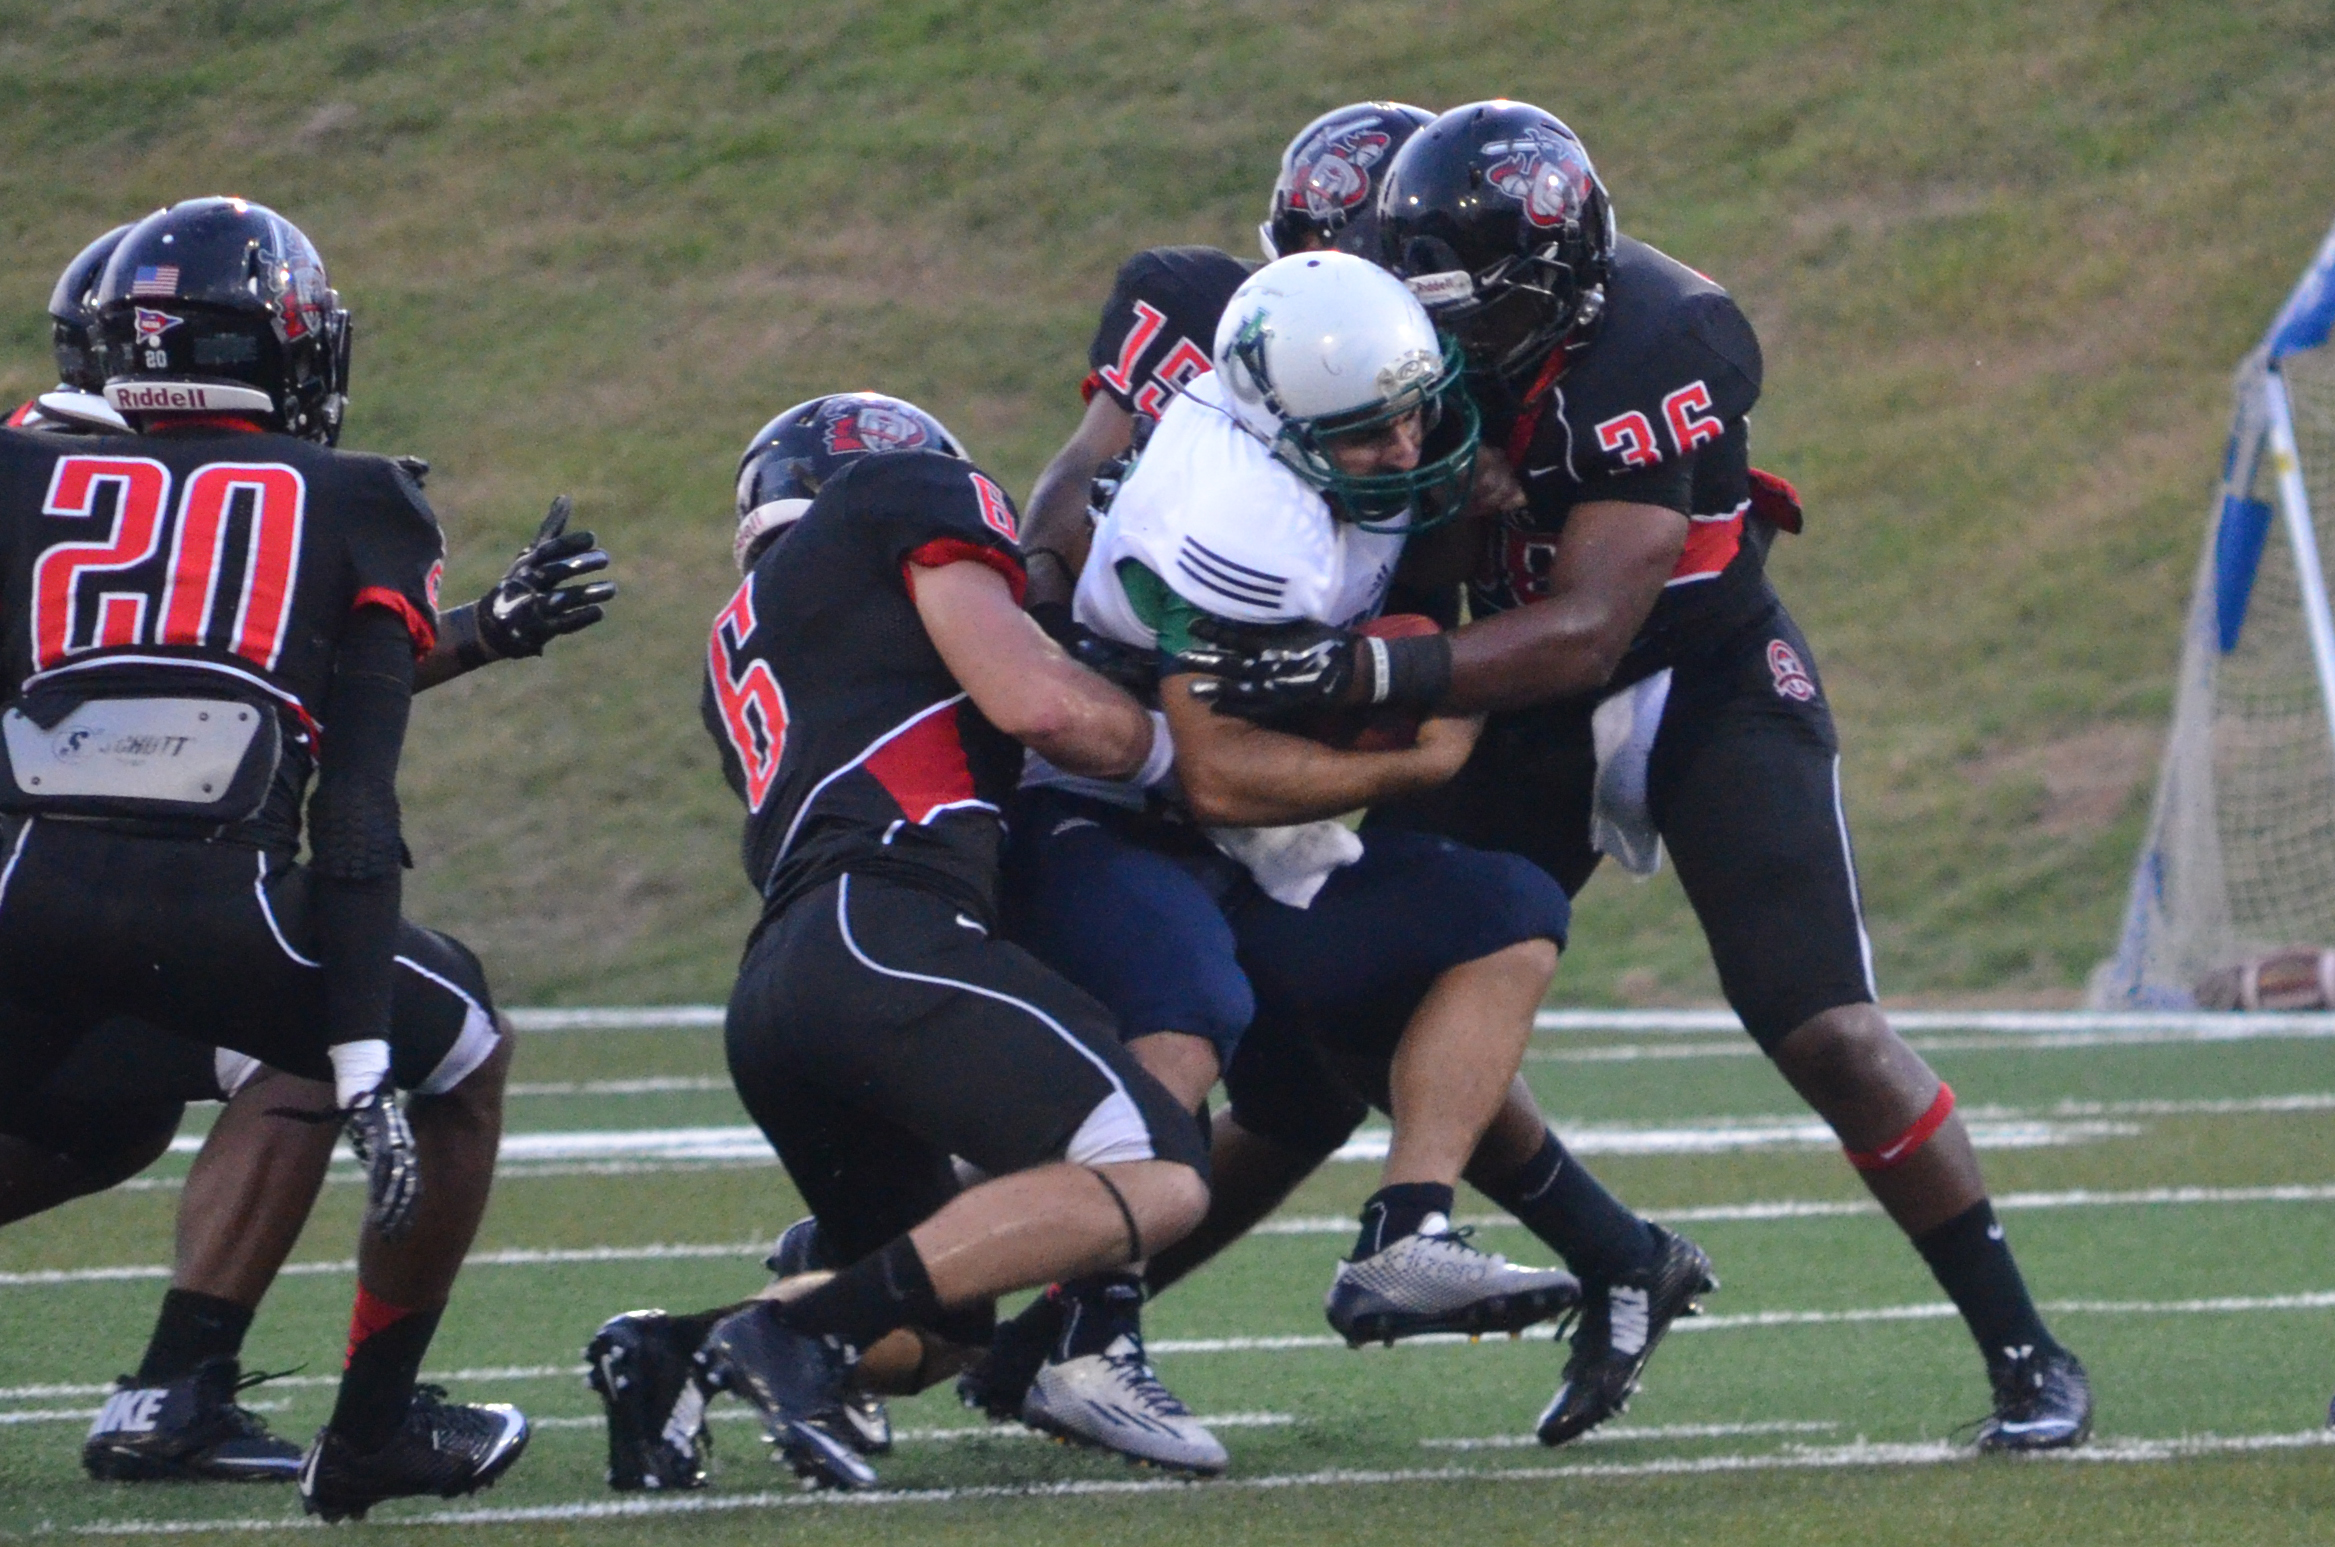 Taylor Anderson and Jalen Hammett work together to tackle an opposing team member